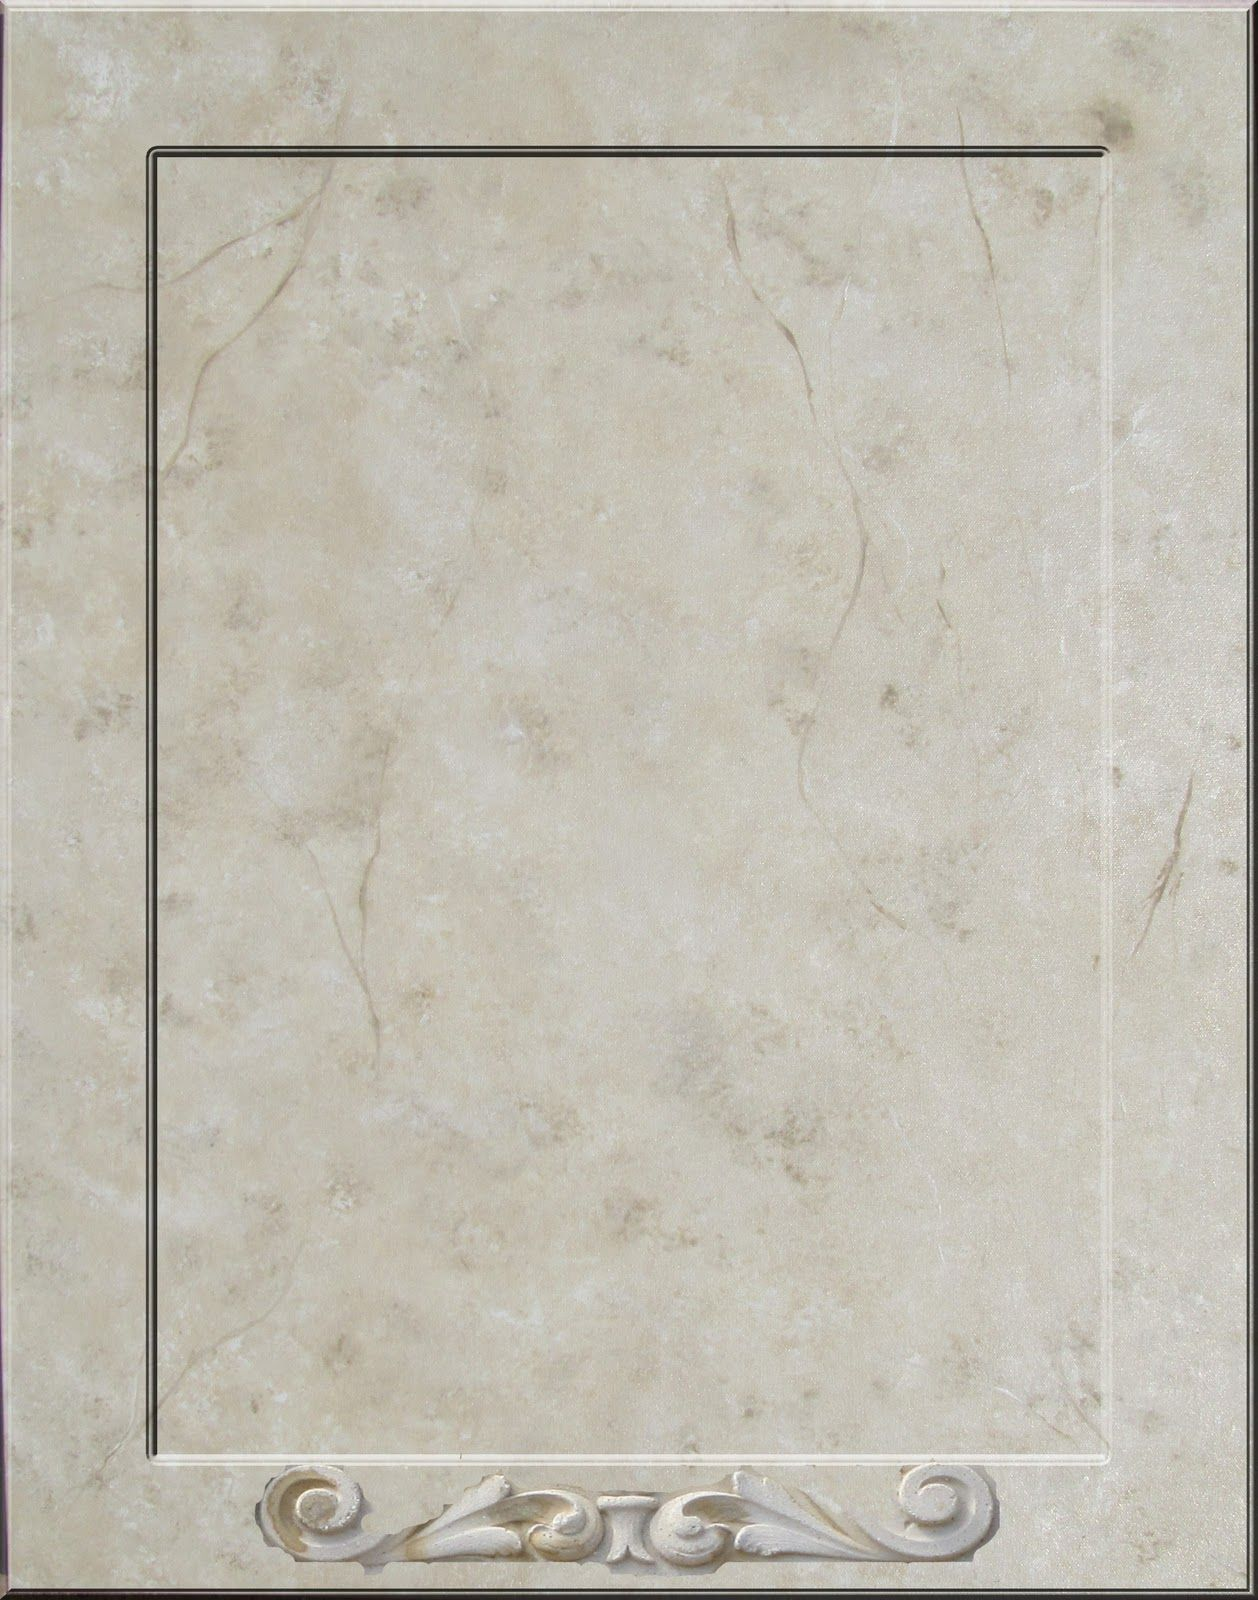 How To Create A Faux Stone Look Trompe L Oeil Part 2 Faux Stone Stone Trompe L Oeil